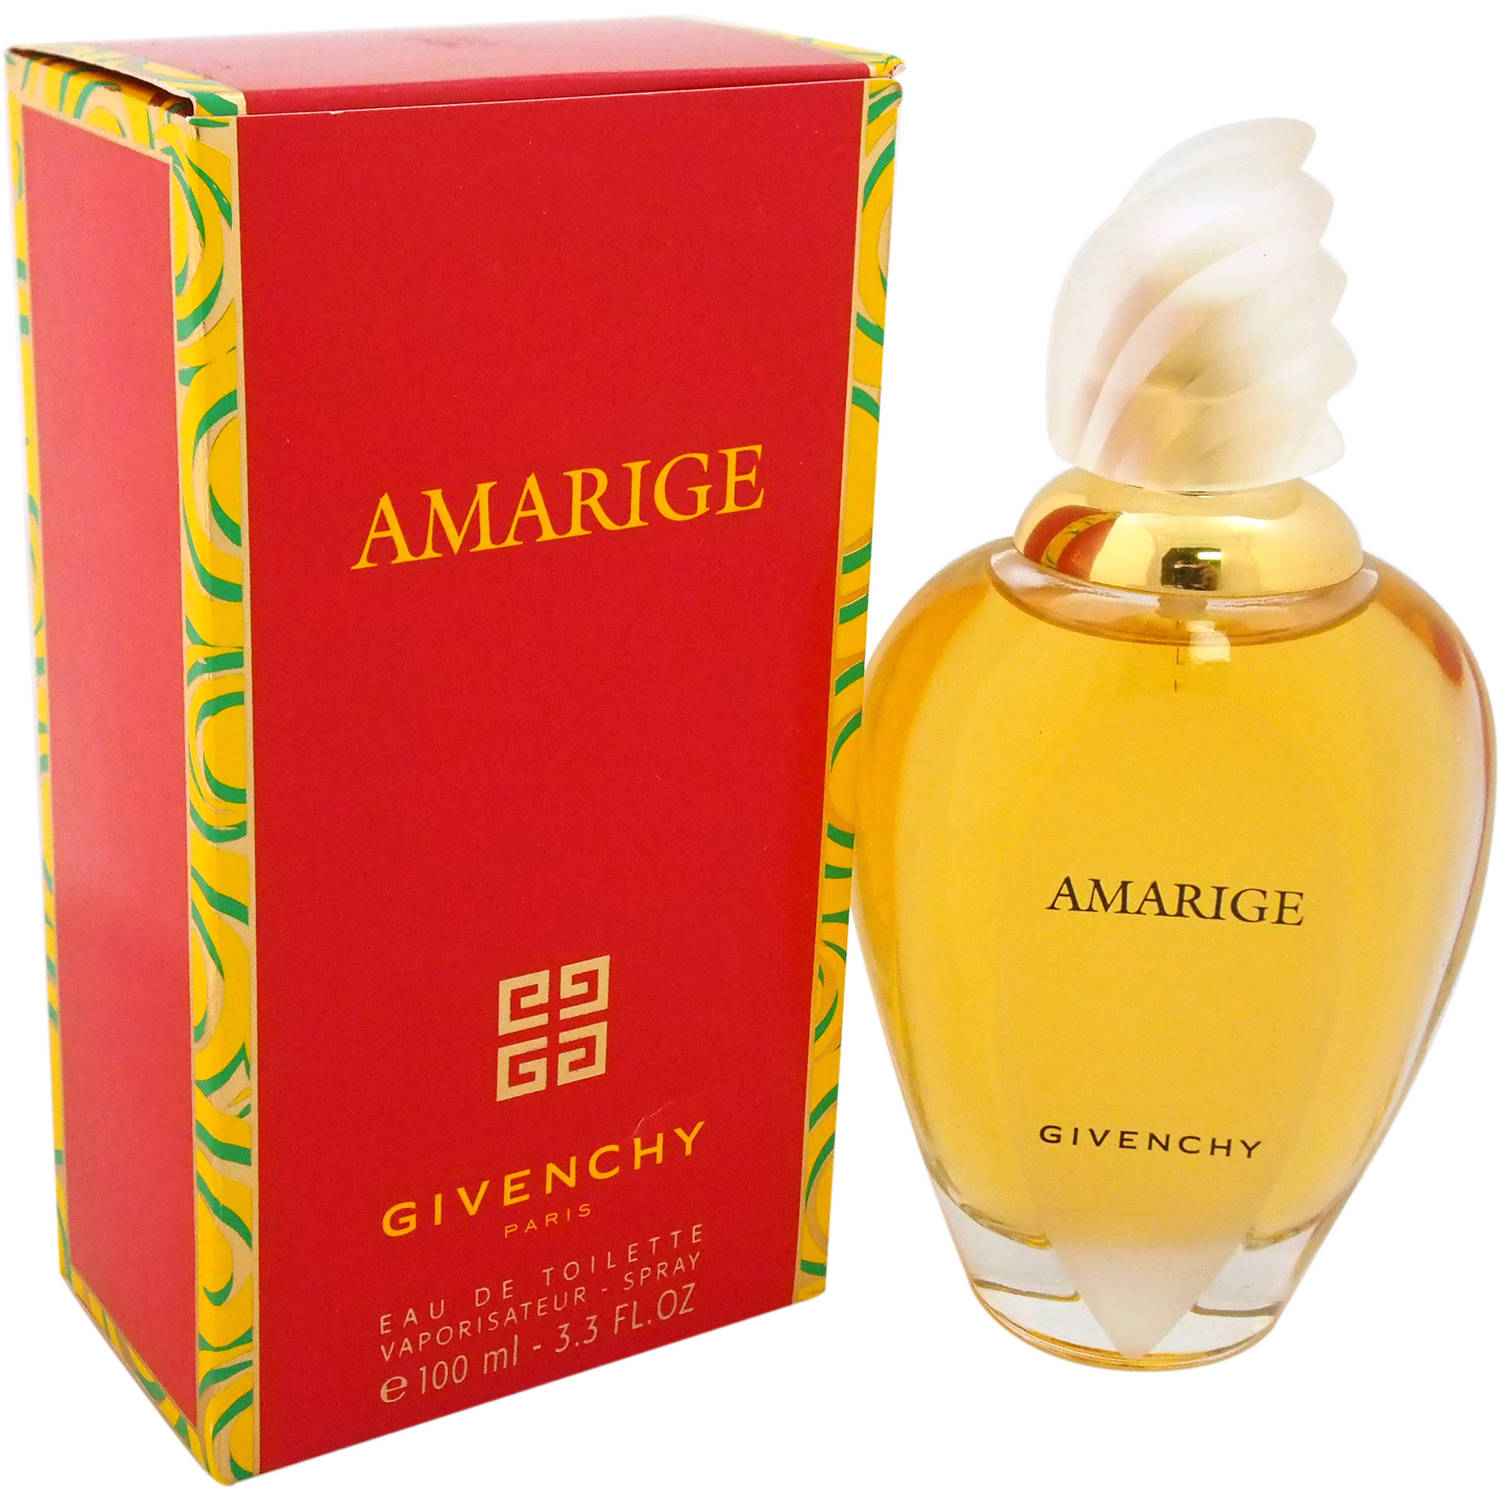 Givenchy Amarige for Women Eau de Toilette Spray, 3.3 oz